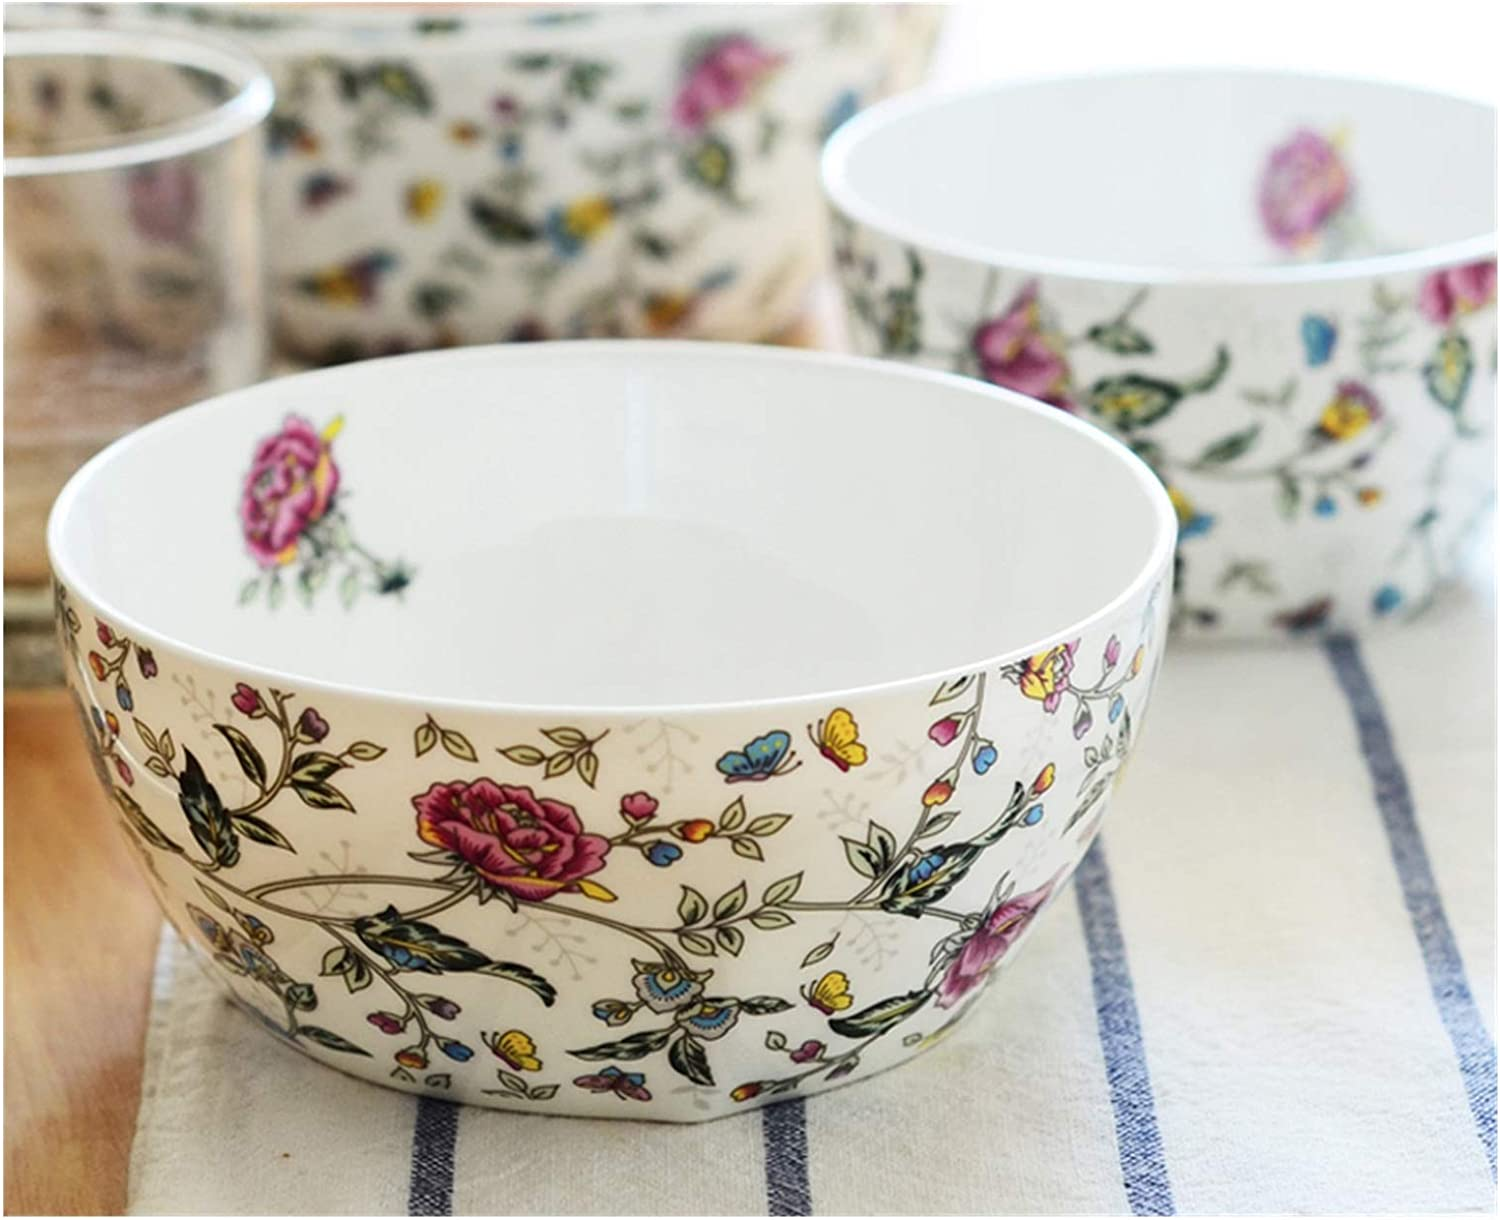 5.5 inch fine bone china floral Overseas parallel import regular item half chinese small bowls bowl rice